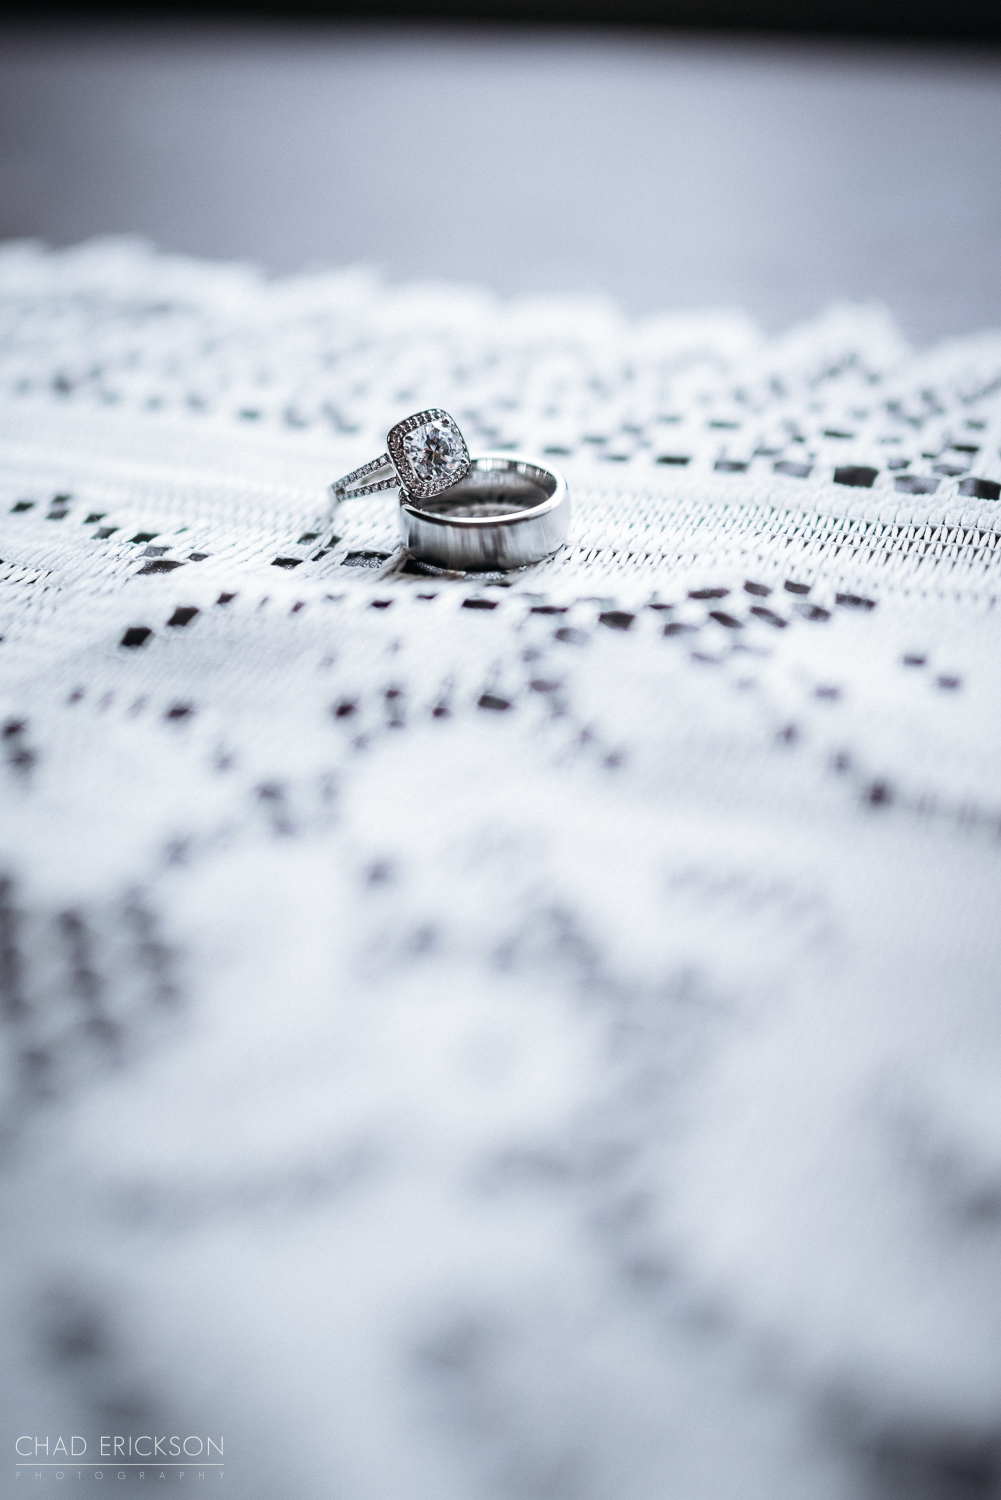 Beautiful Rings picture